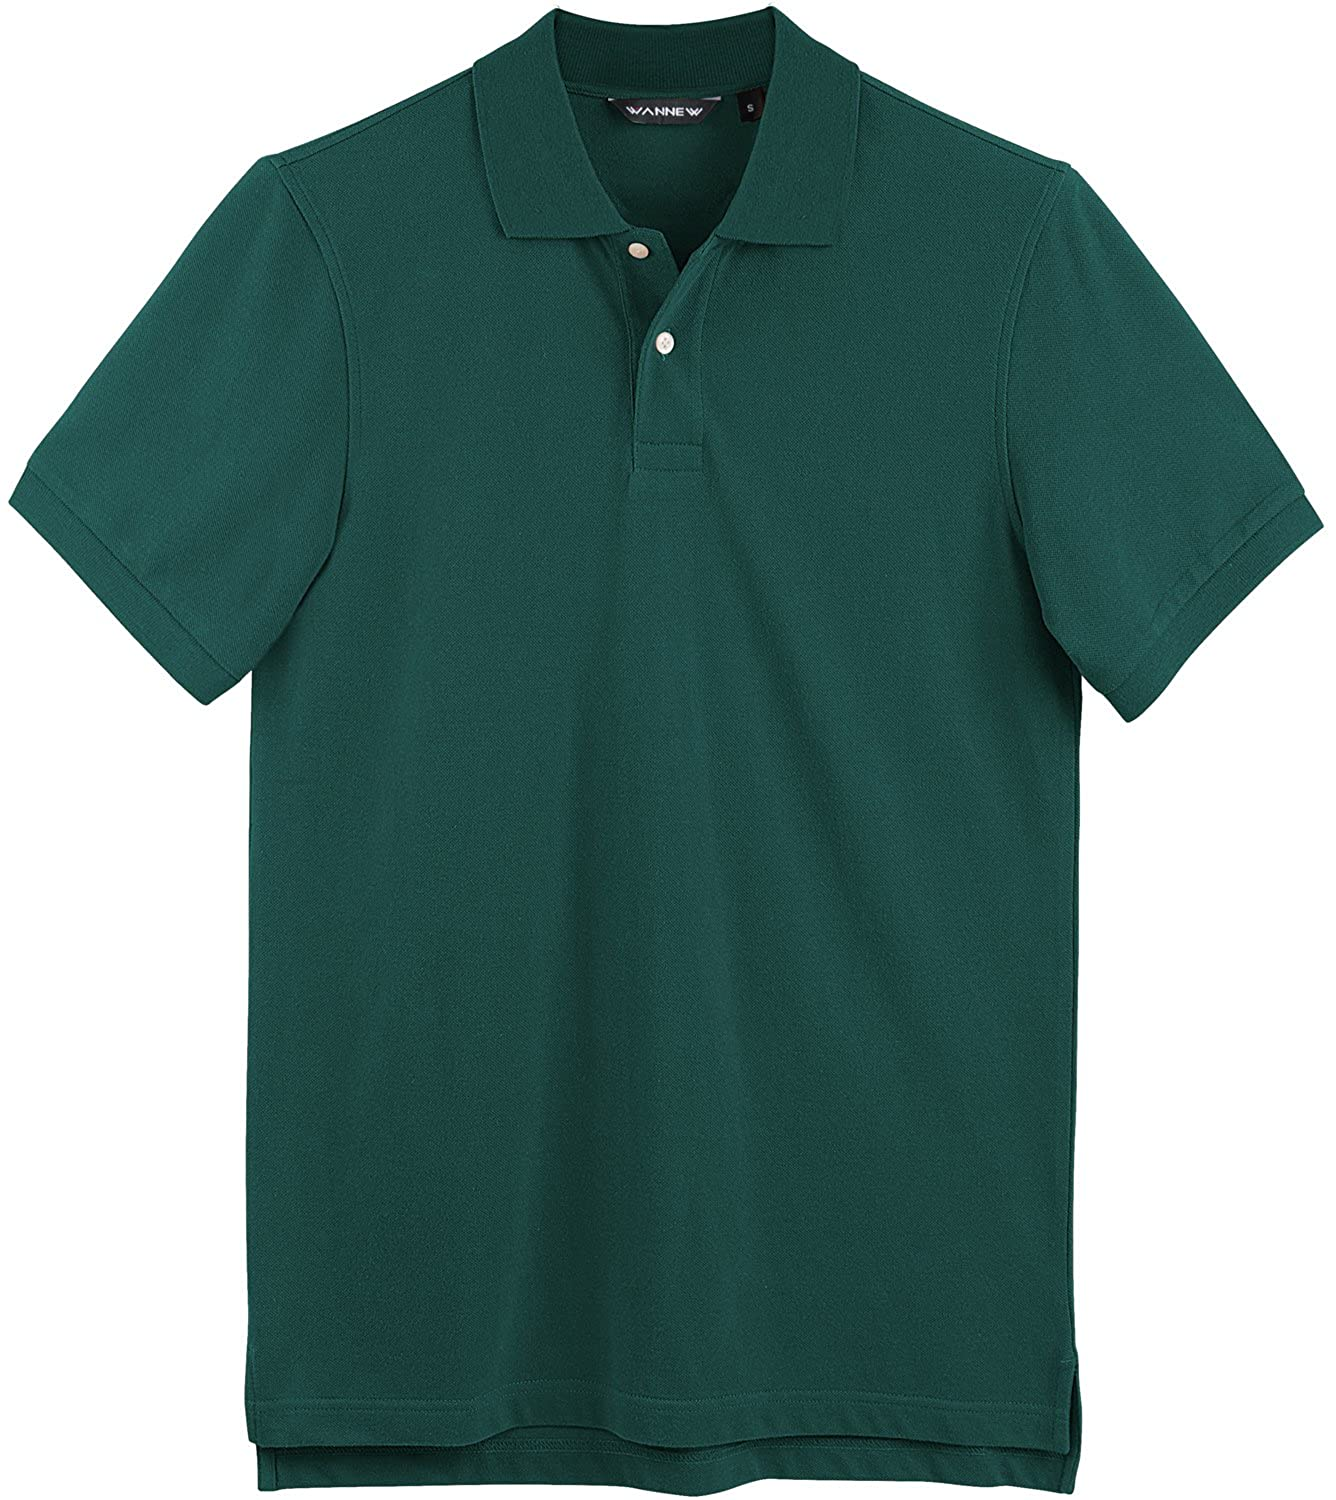 9f2c58f7 Which natural stretch fabric moves with you and keeps you cool and dry. Mens  polo shirts with Regular fit ...